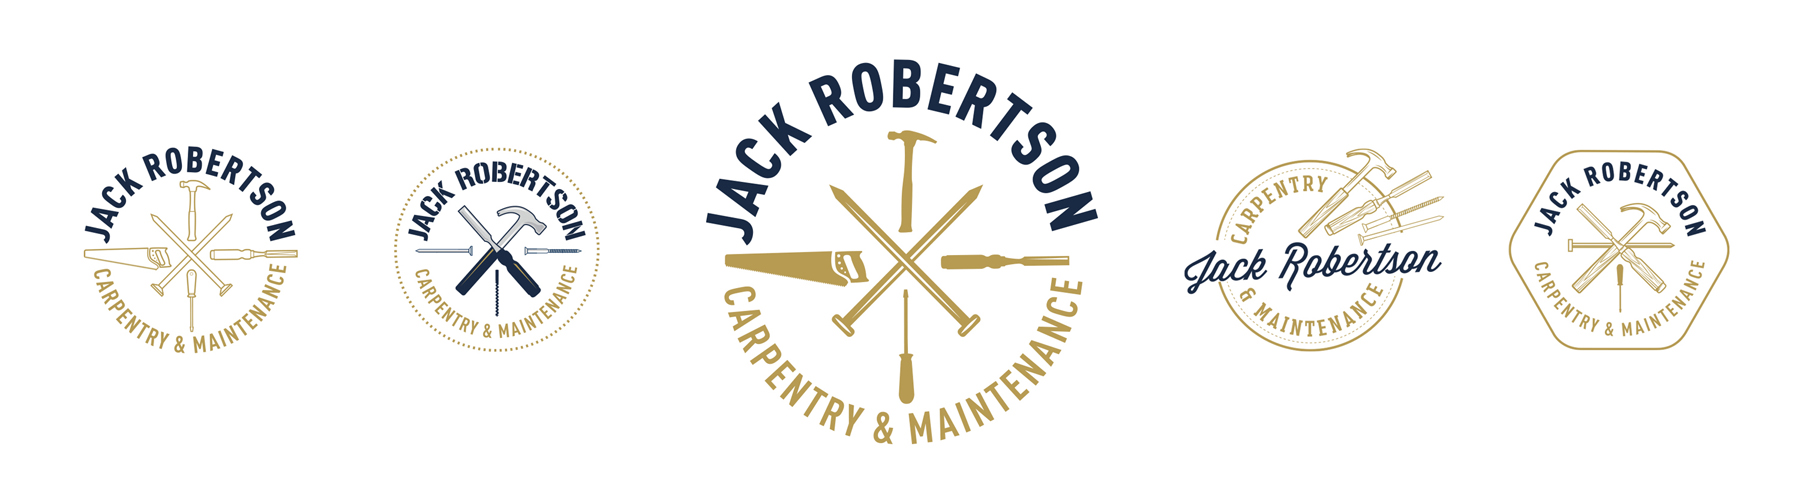 Jack Robertson Carpentry and Maintenance Logo options on white background isolated